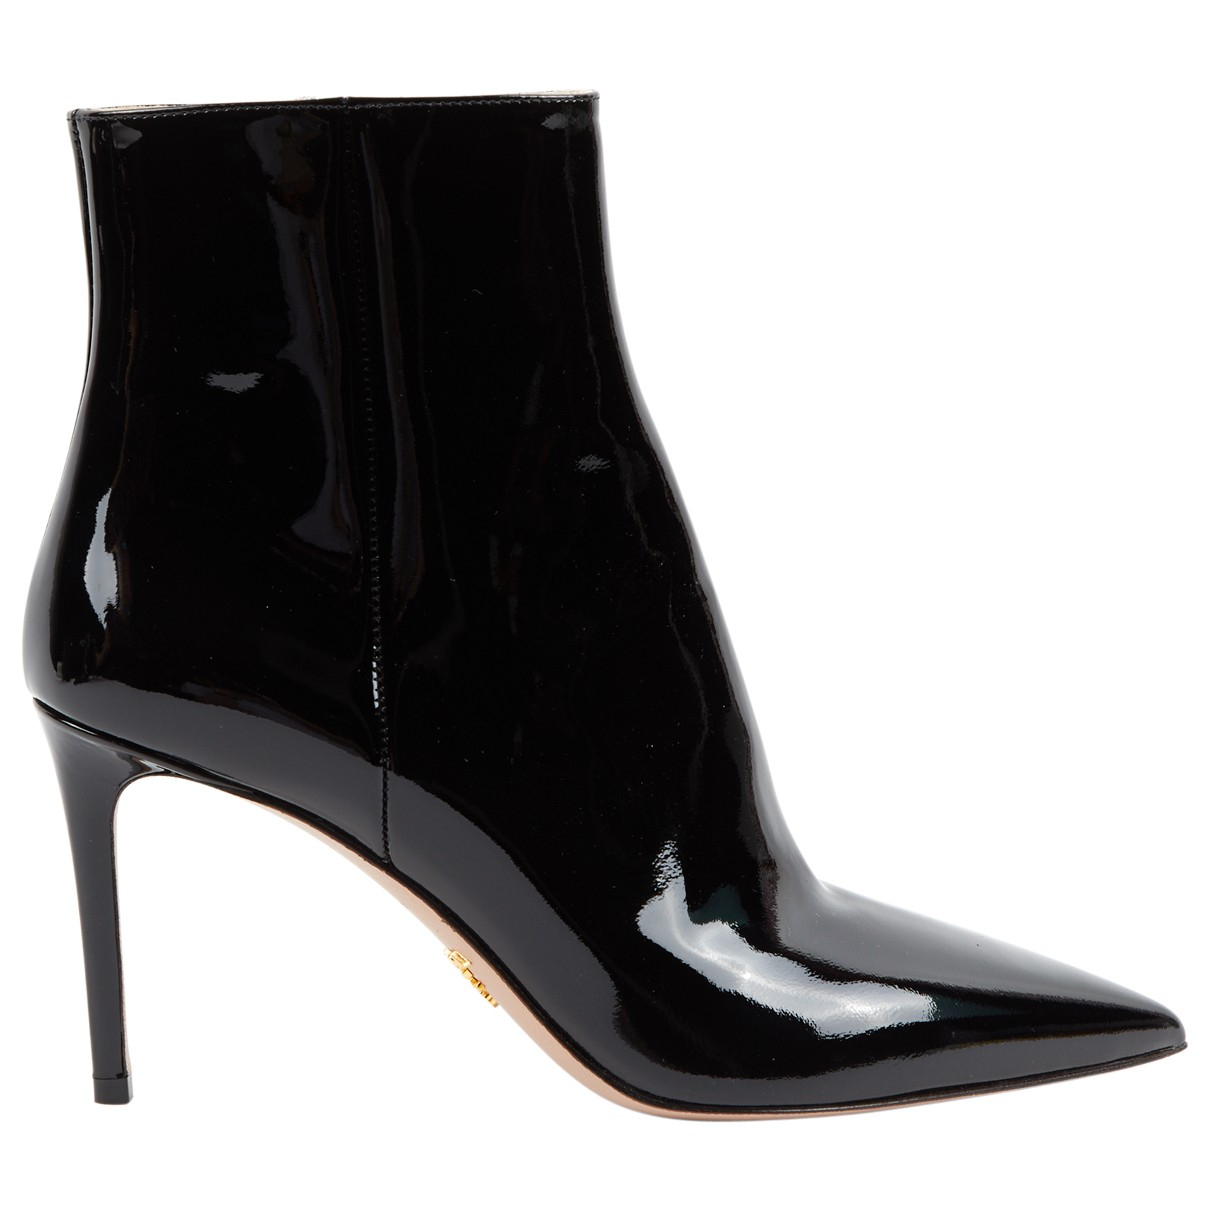 Prada \N Black Patent leather Ankle boots for Women 39 EU